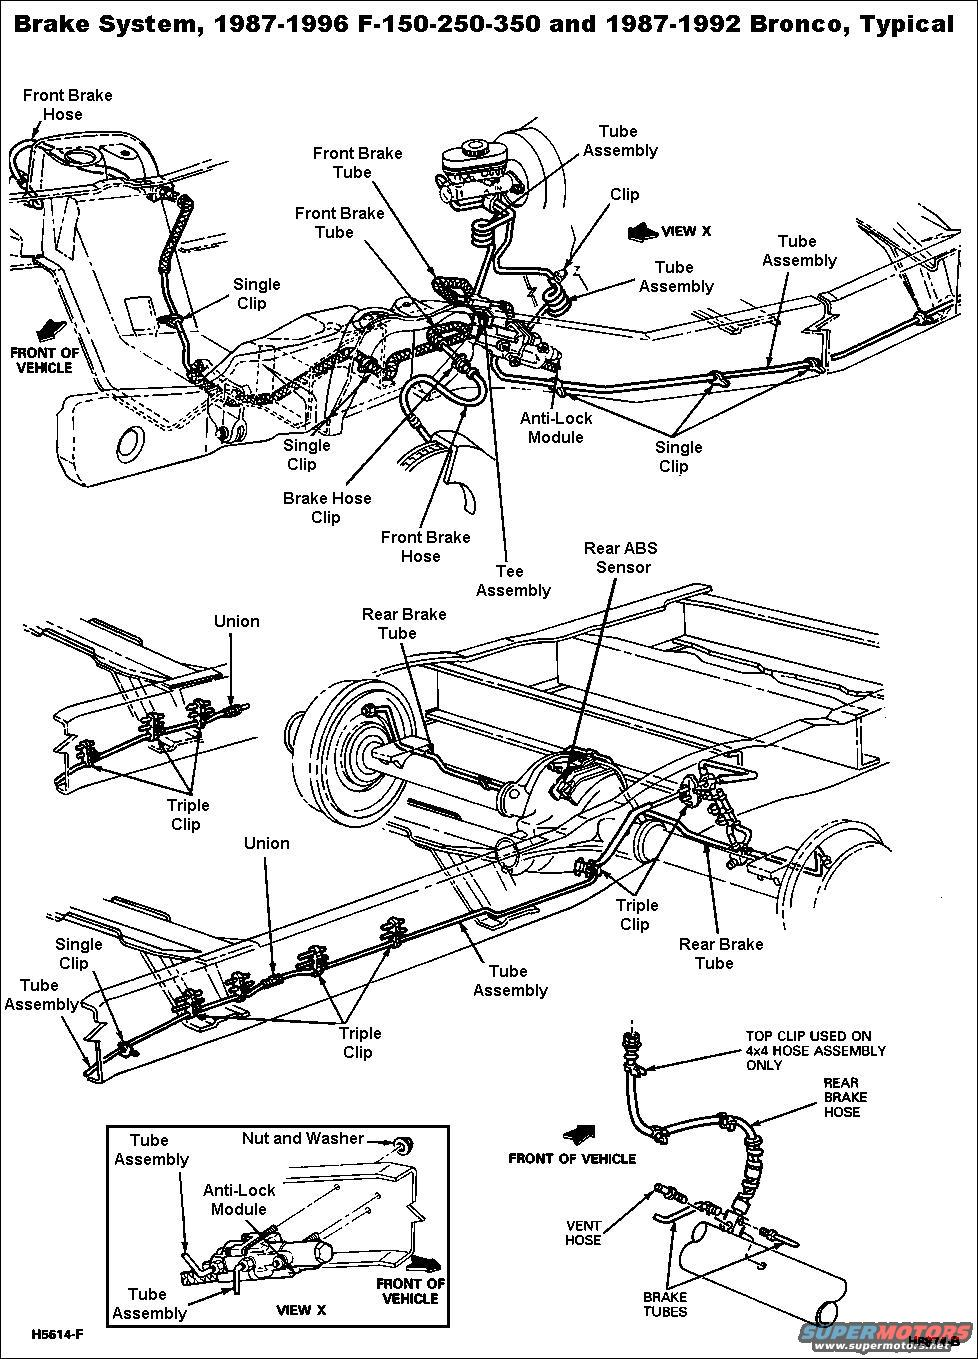 2000 Ford Explorer Transmission Wiring Diagram besides 2003 Land Rover Discovery Fuse Box Diagram Html in addition Ford Mustang 4 0 V6 Coolant Diagram also 91 94 X Schematics Diagrams in addition 1146228 Updated Replaced Some Stuff Brakes Still Suck. on 2001 ford explorer sport trac vacuum diagram